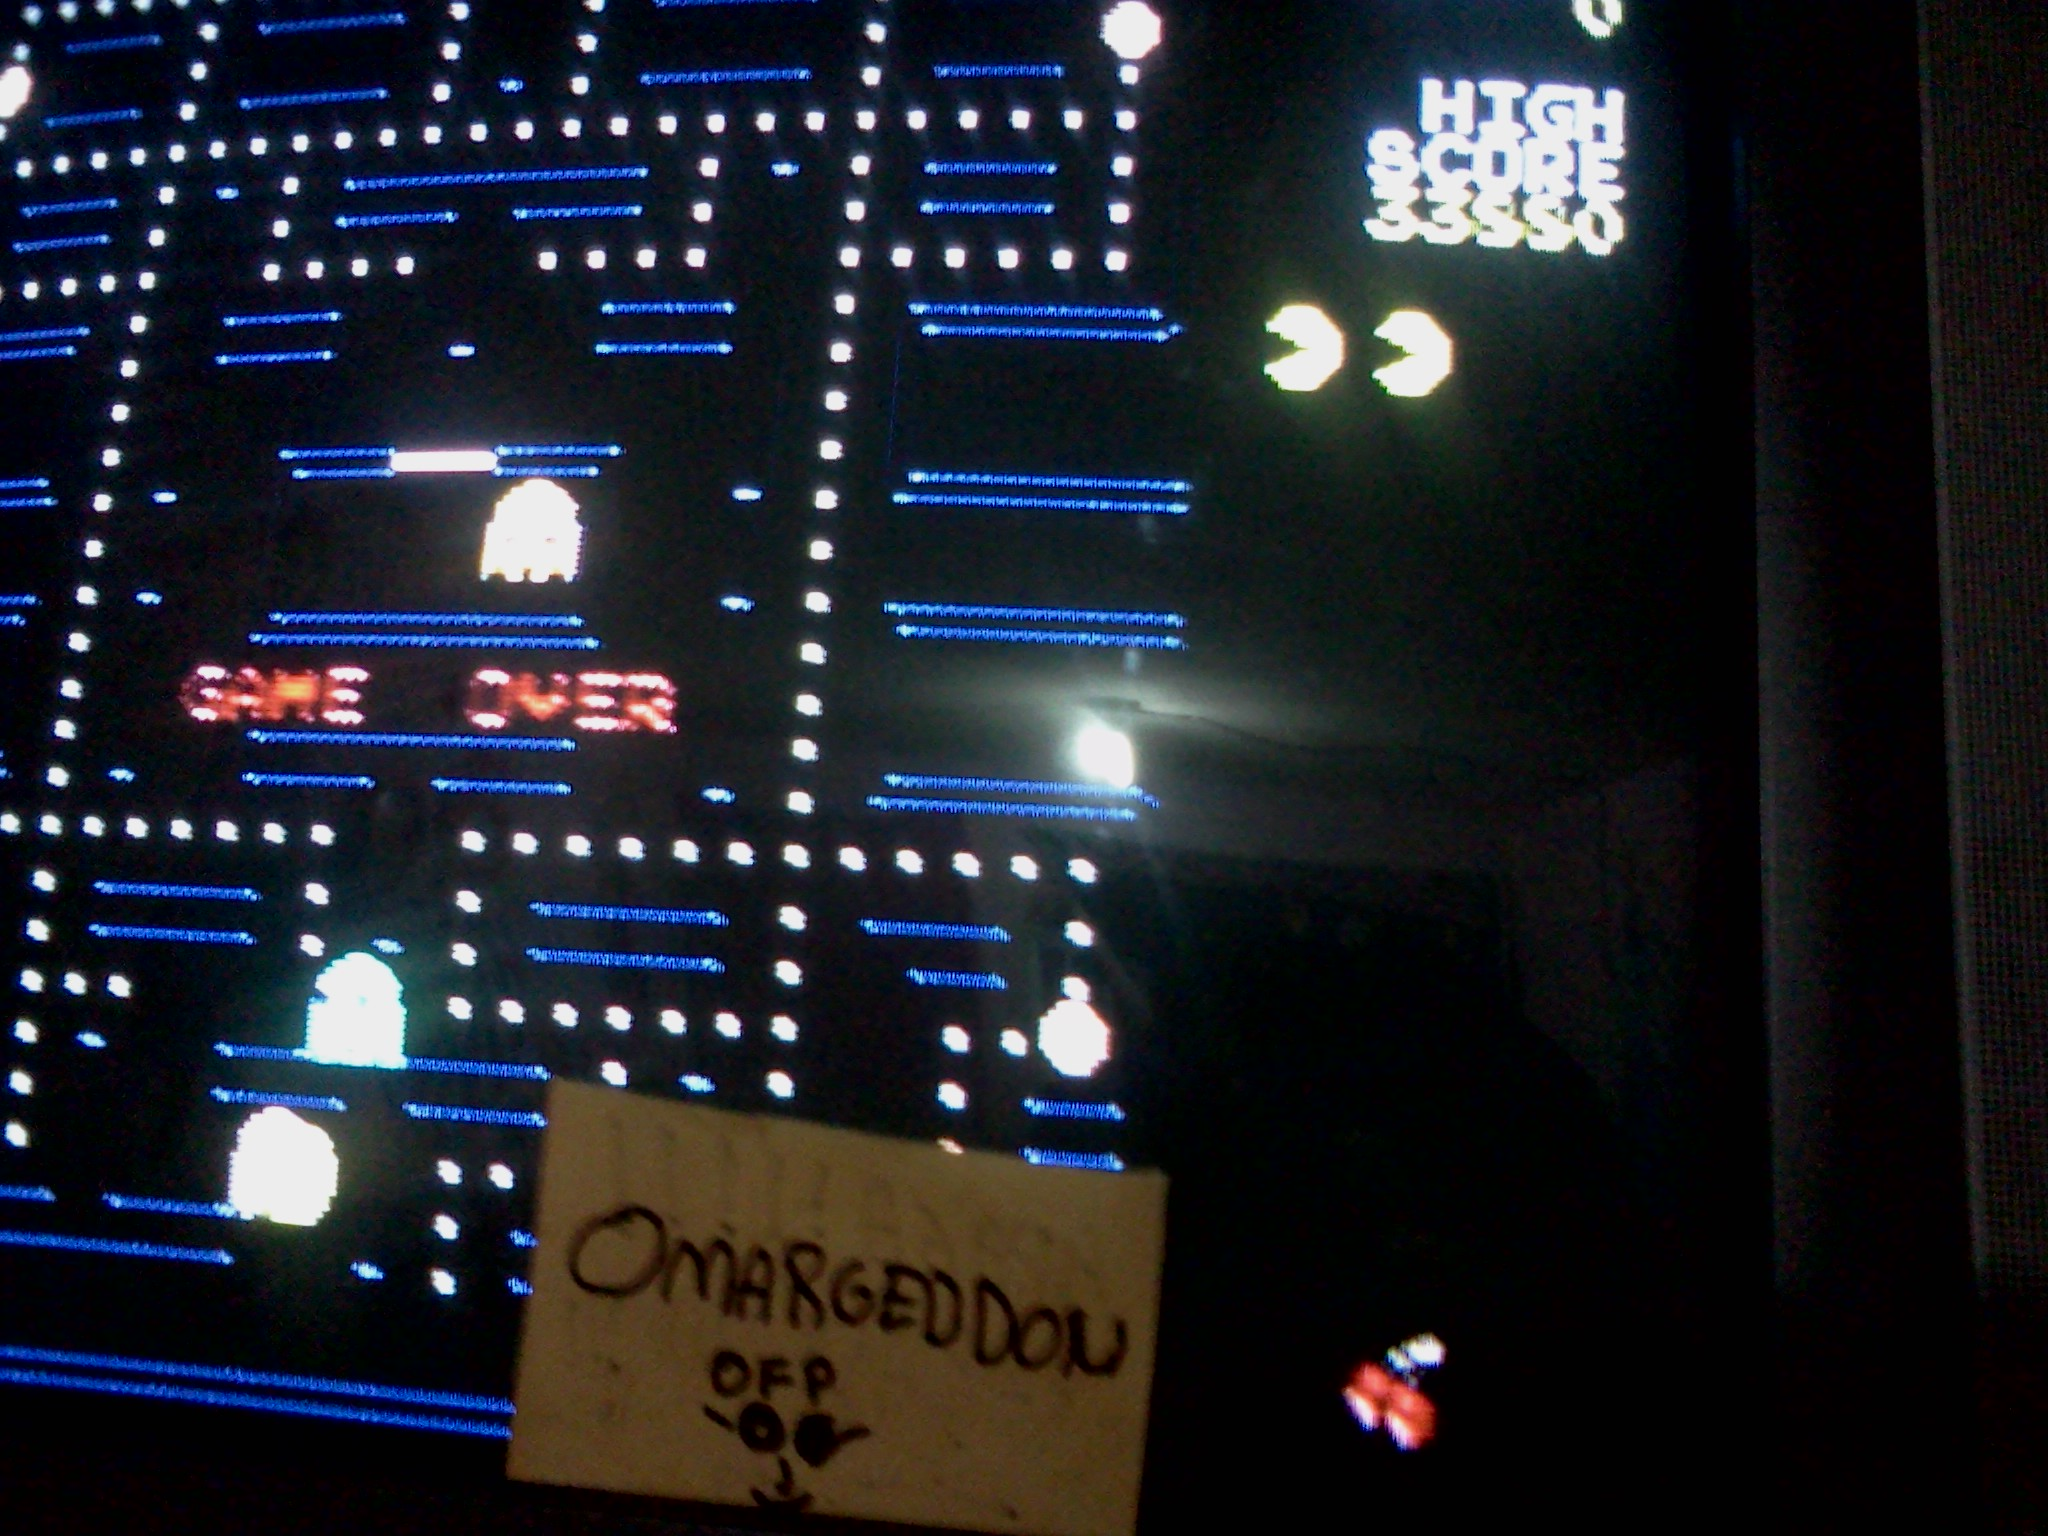 Pac-Man 33,880 points